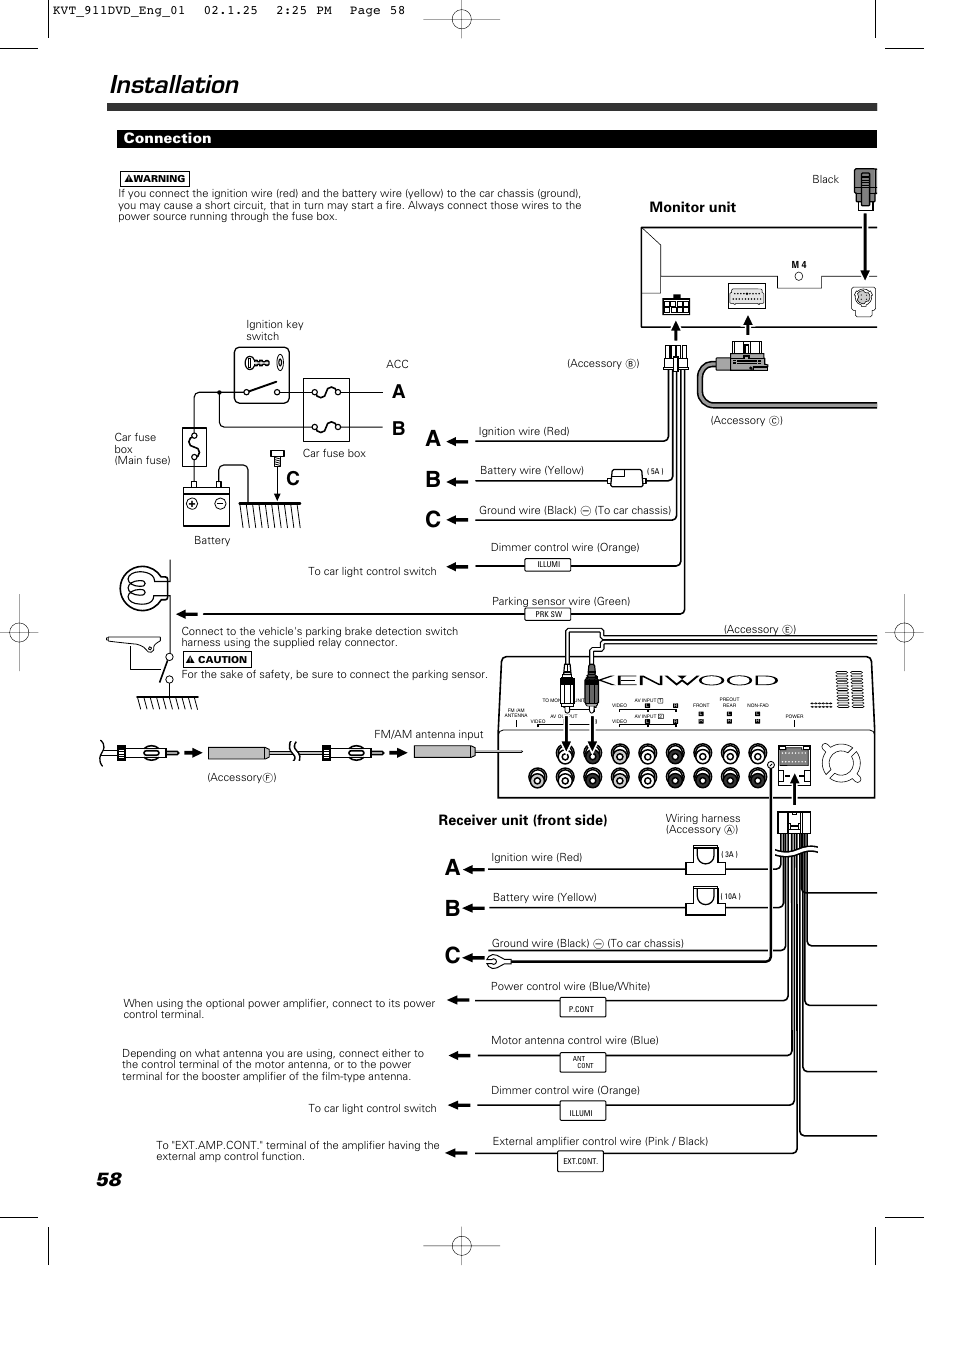 installation, ab c, connection | kenwood kvt-911dvd user manual | page 58 /  68  manuals directory